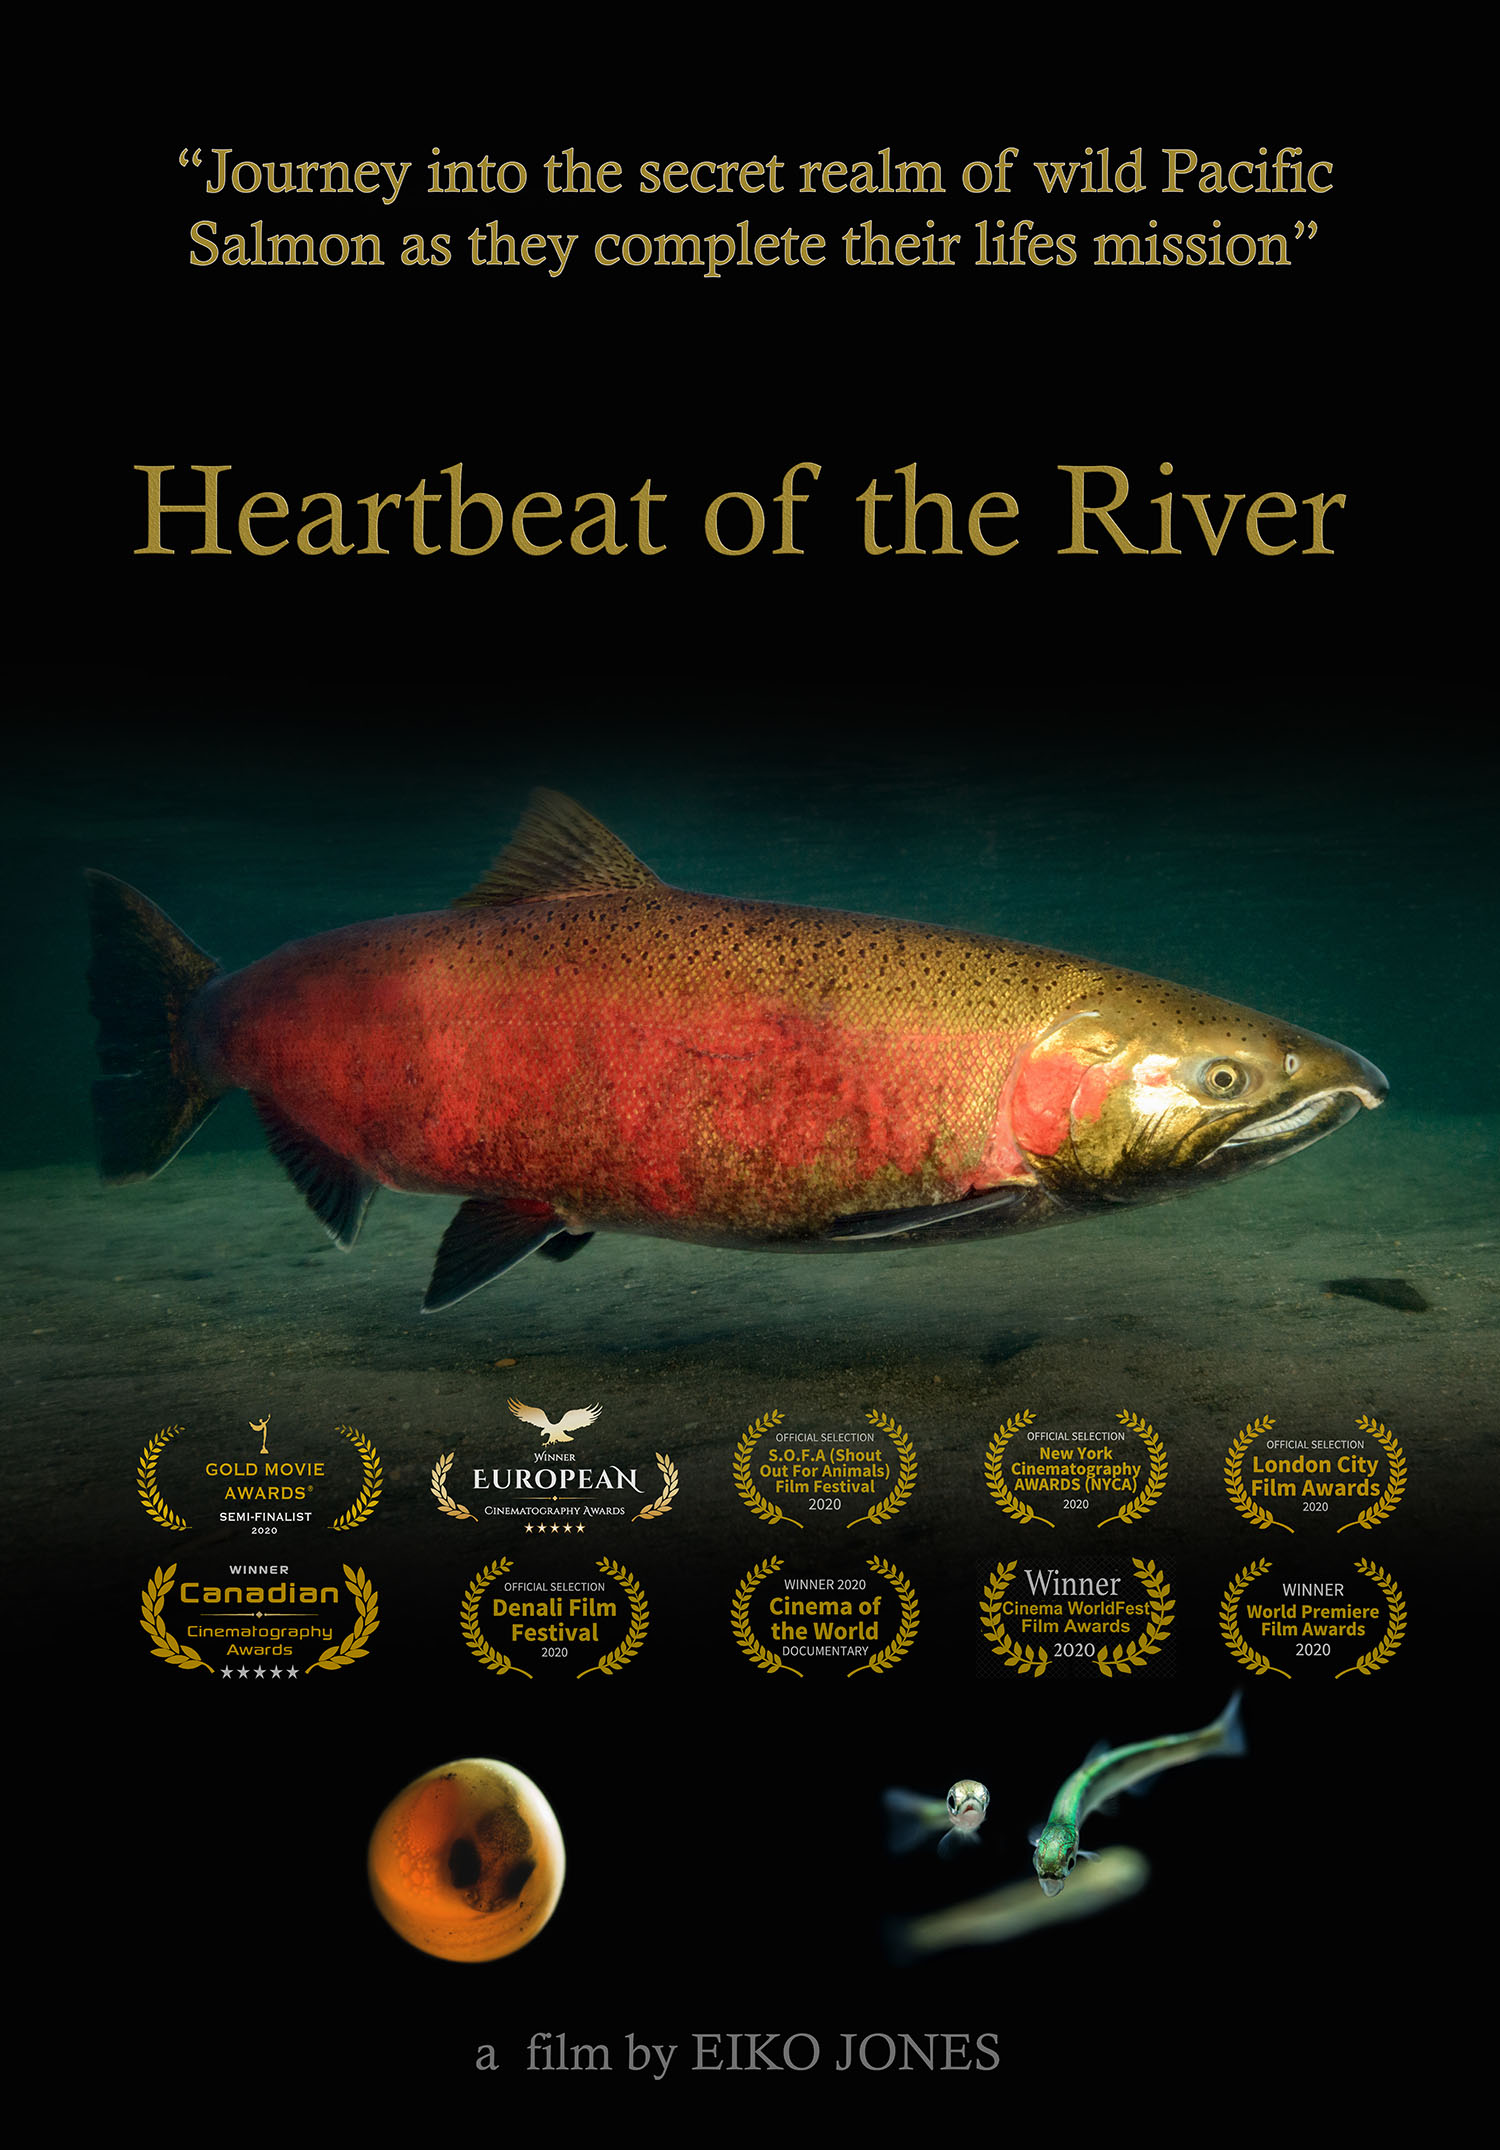 Heartbeat of the river movie poster